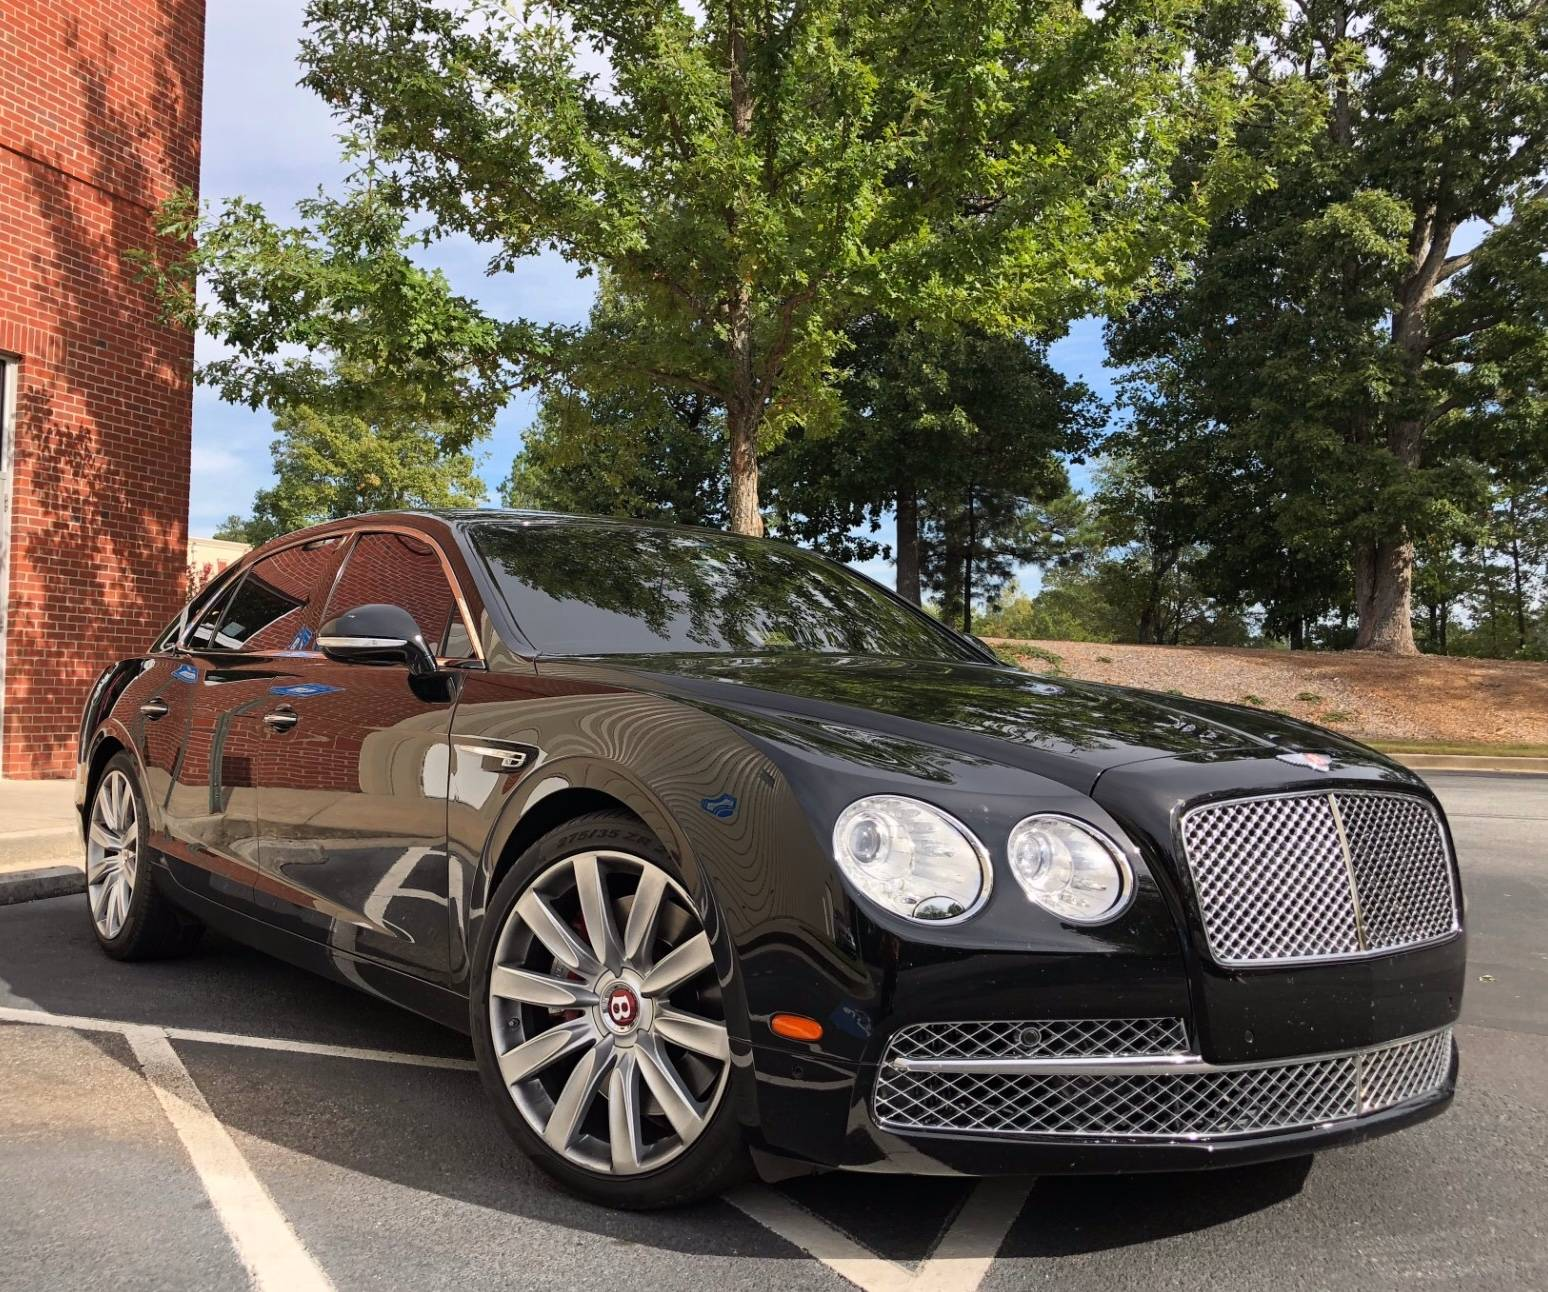 royal one mulsanne news bentley used miles for sale low owner